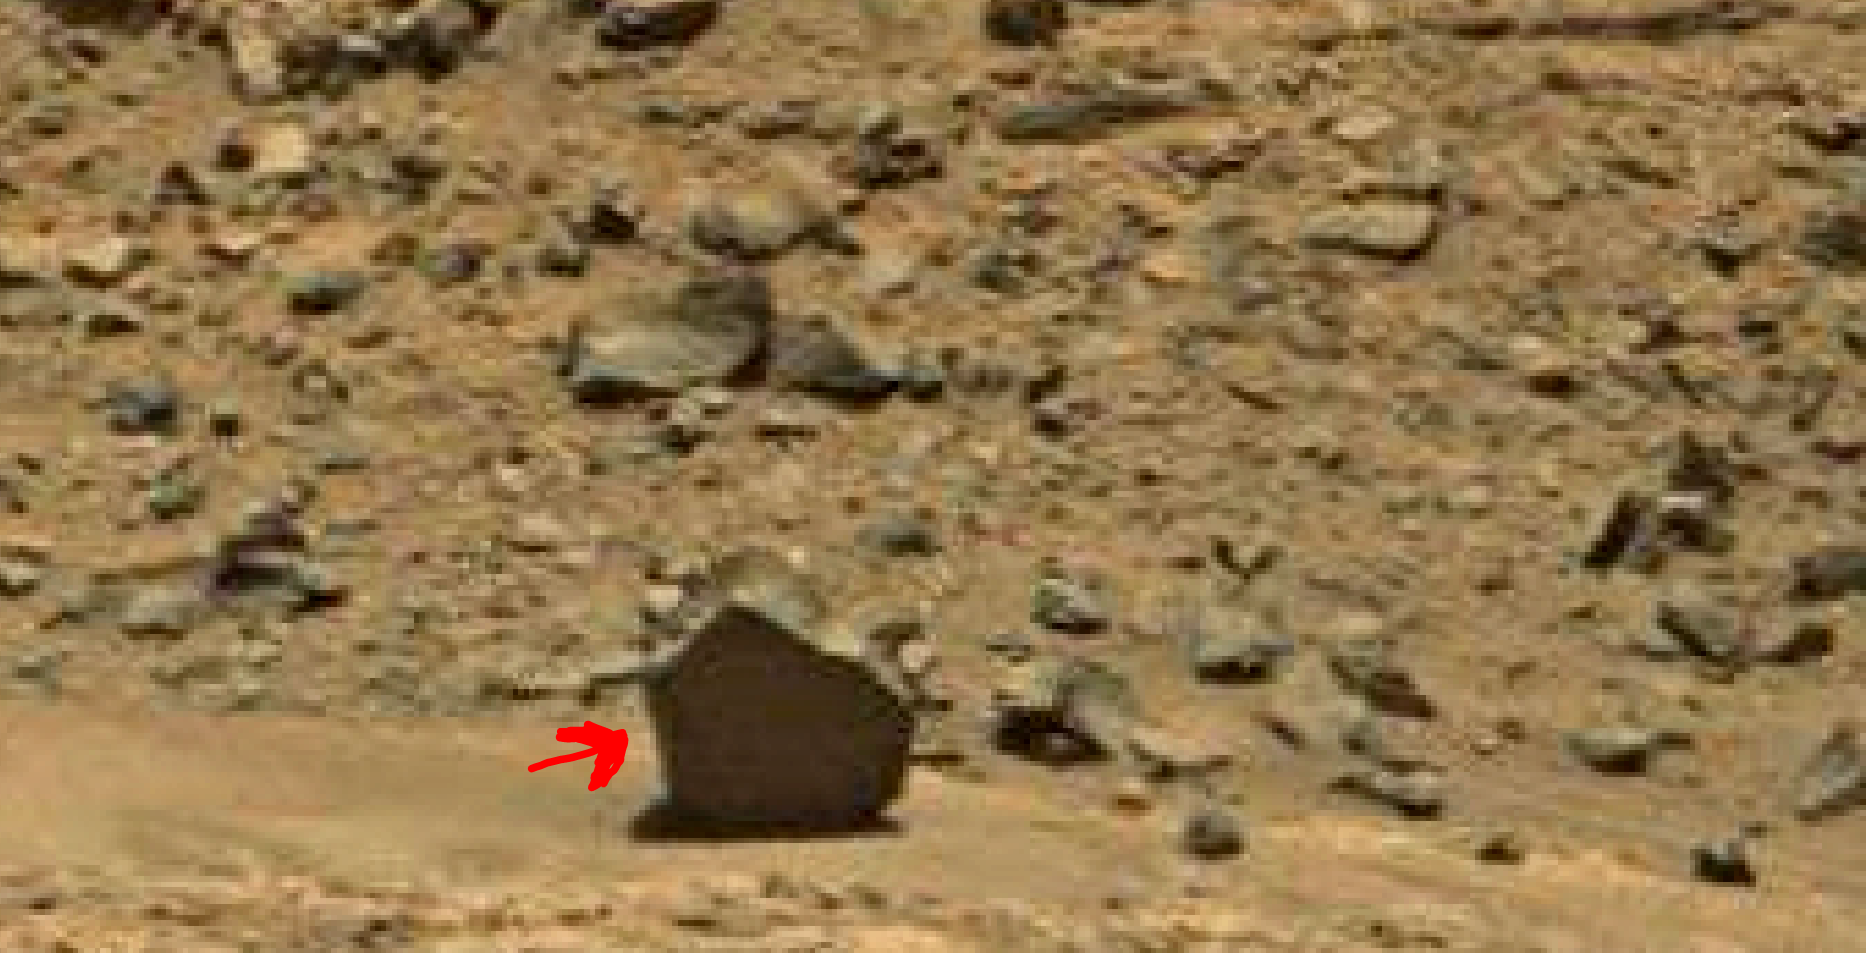 mars sol 1378 anomaly-artifacts 6 was life on mars